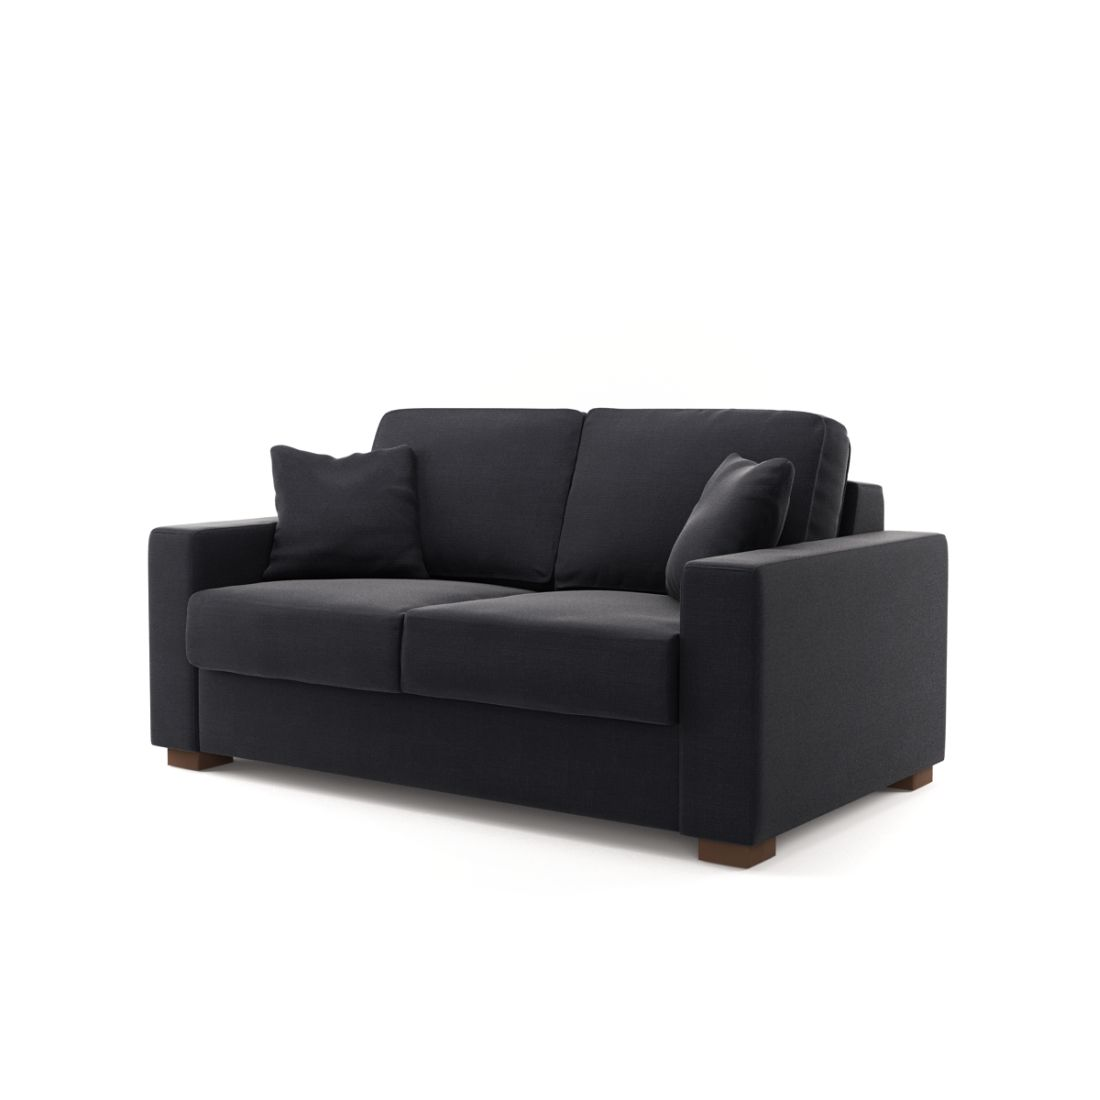 schlafsofa 2 sitzer schlafsofas online kaufen m bel. Black Bedroom Furniture Sets. Home Design Ideas